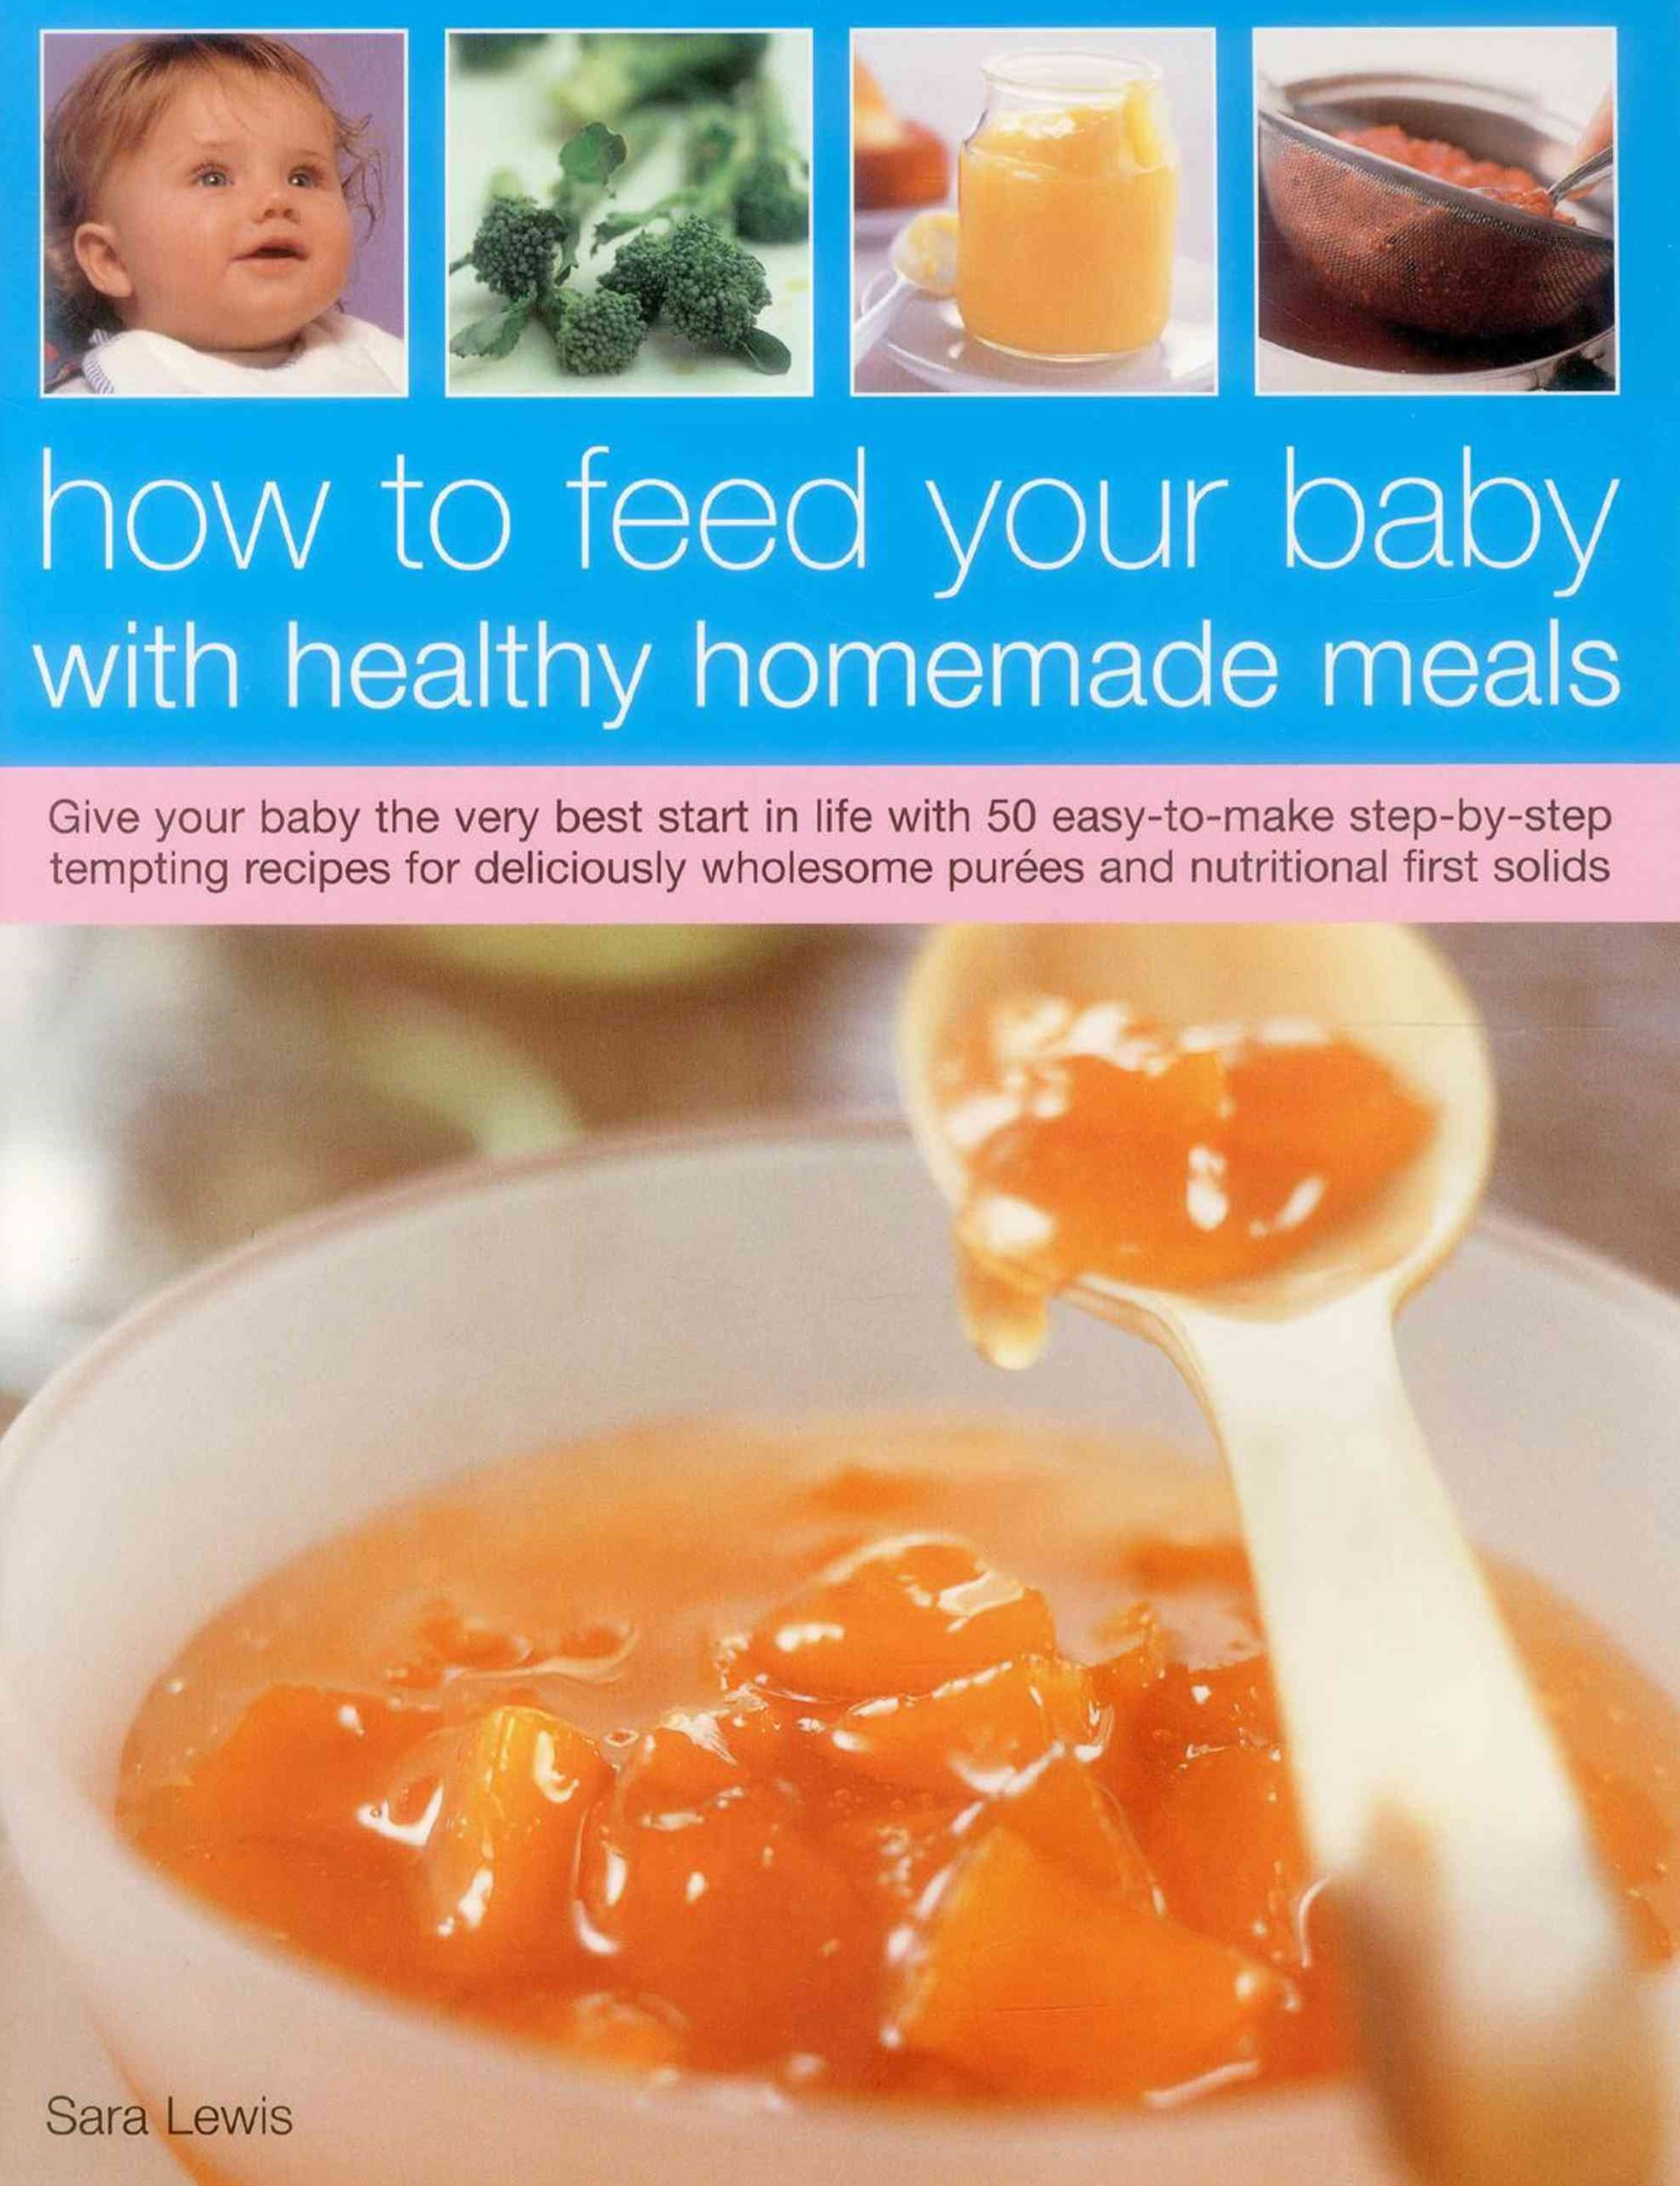 How to Feed Your Baby with Healthy and Homemade Meals